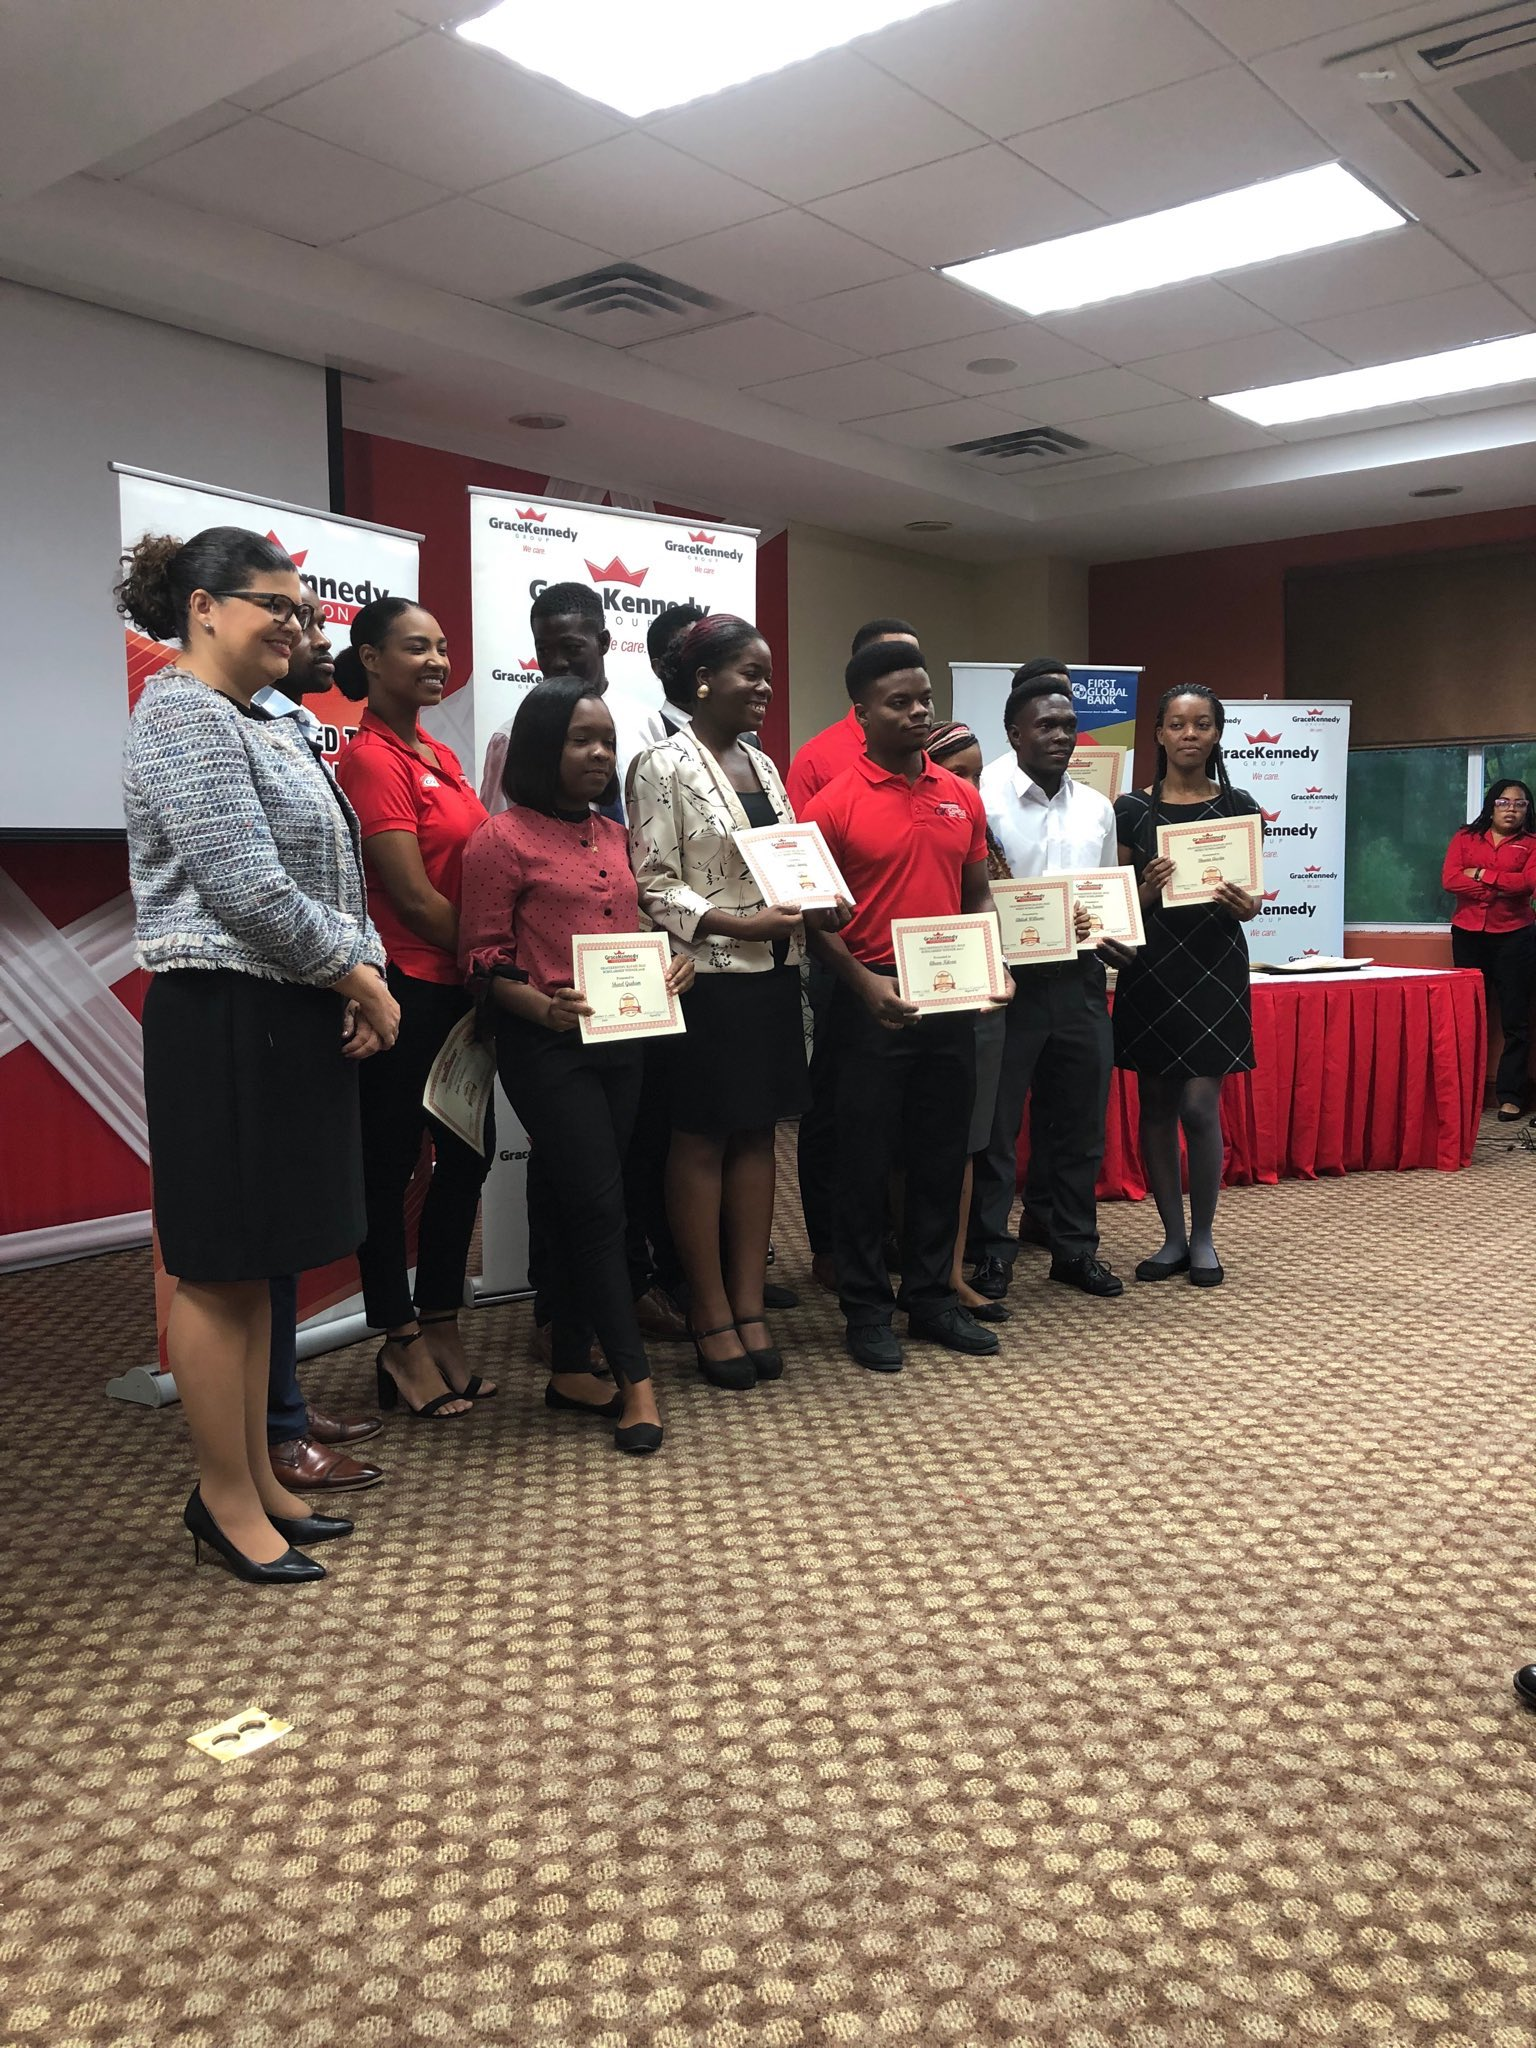 The J$1.2 million GraceKennedy Rafael Diaz Scholarship is offered to UWI Business students in the faculty of Social Sciences and issued J$400k per year for three consecutive years.